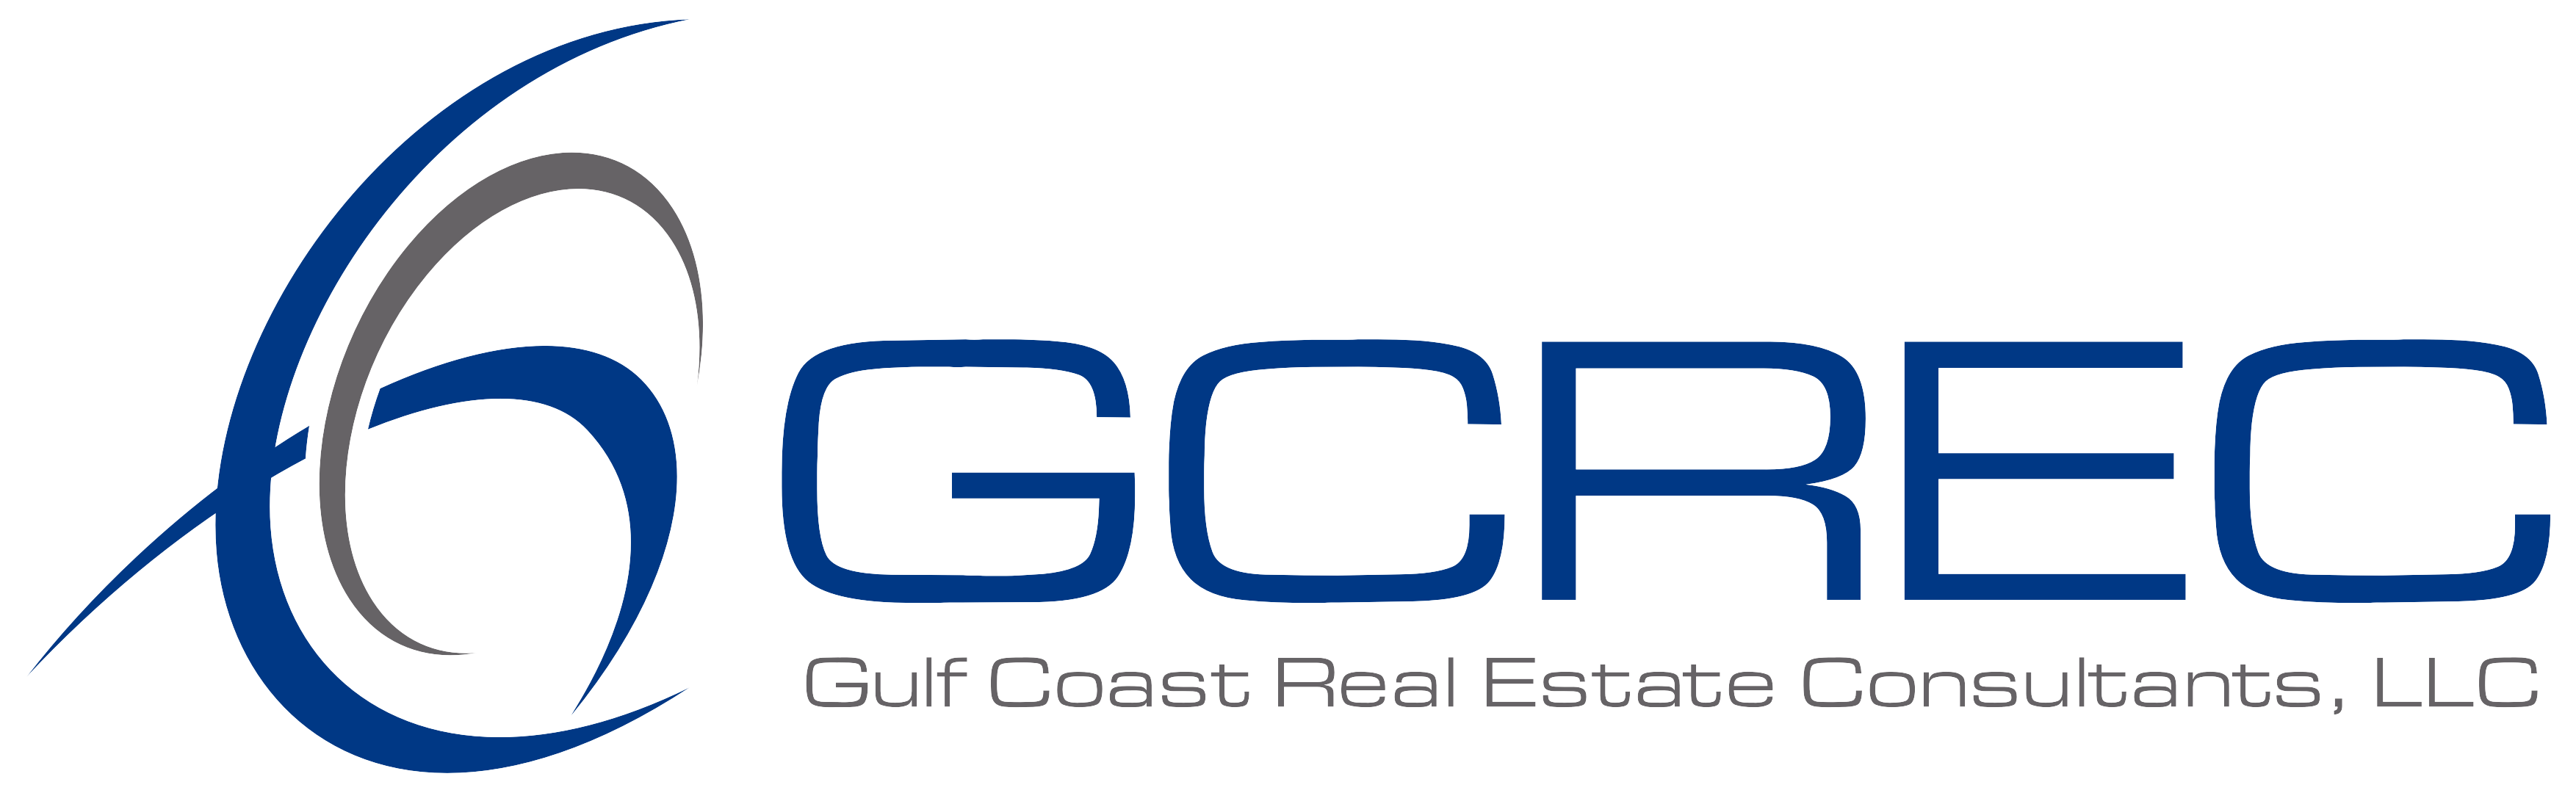 Gulf Coast Real Estate Consultants, LLC